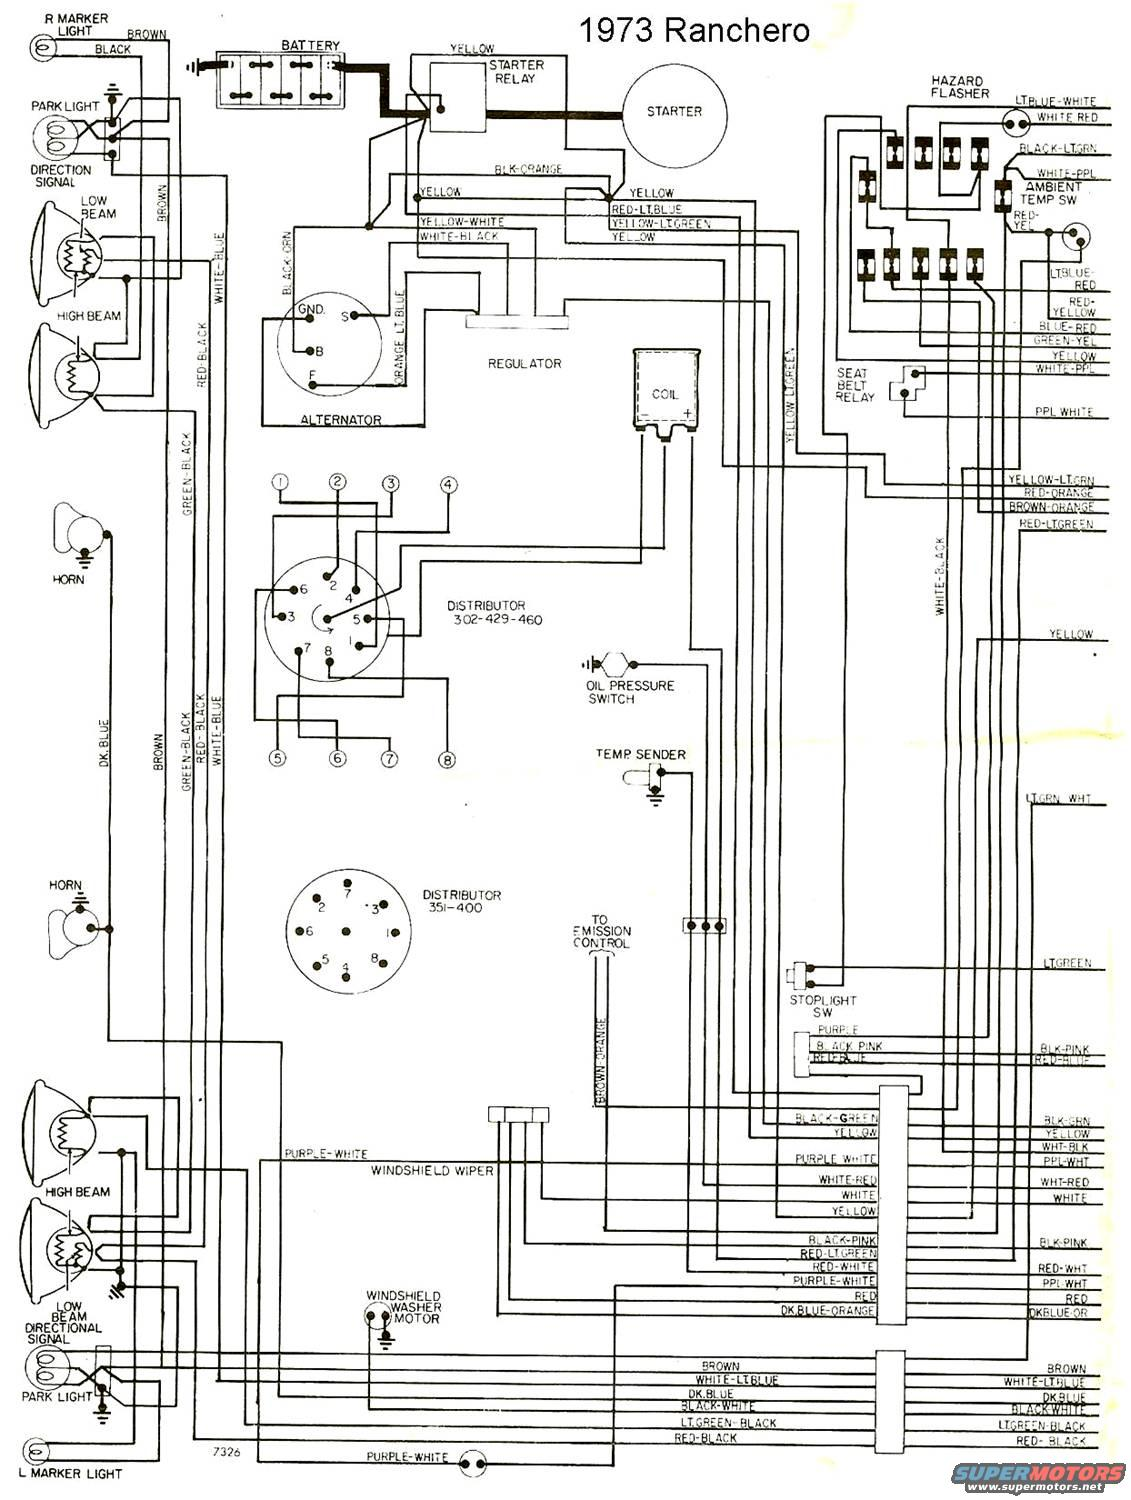 72 ranchero wiring diagram